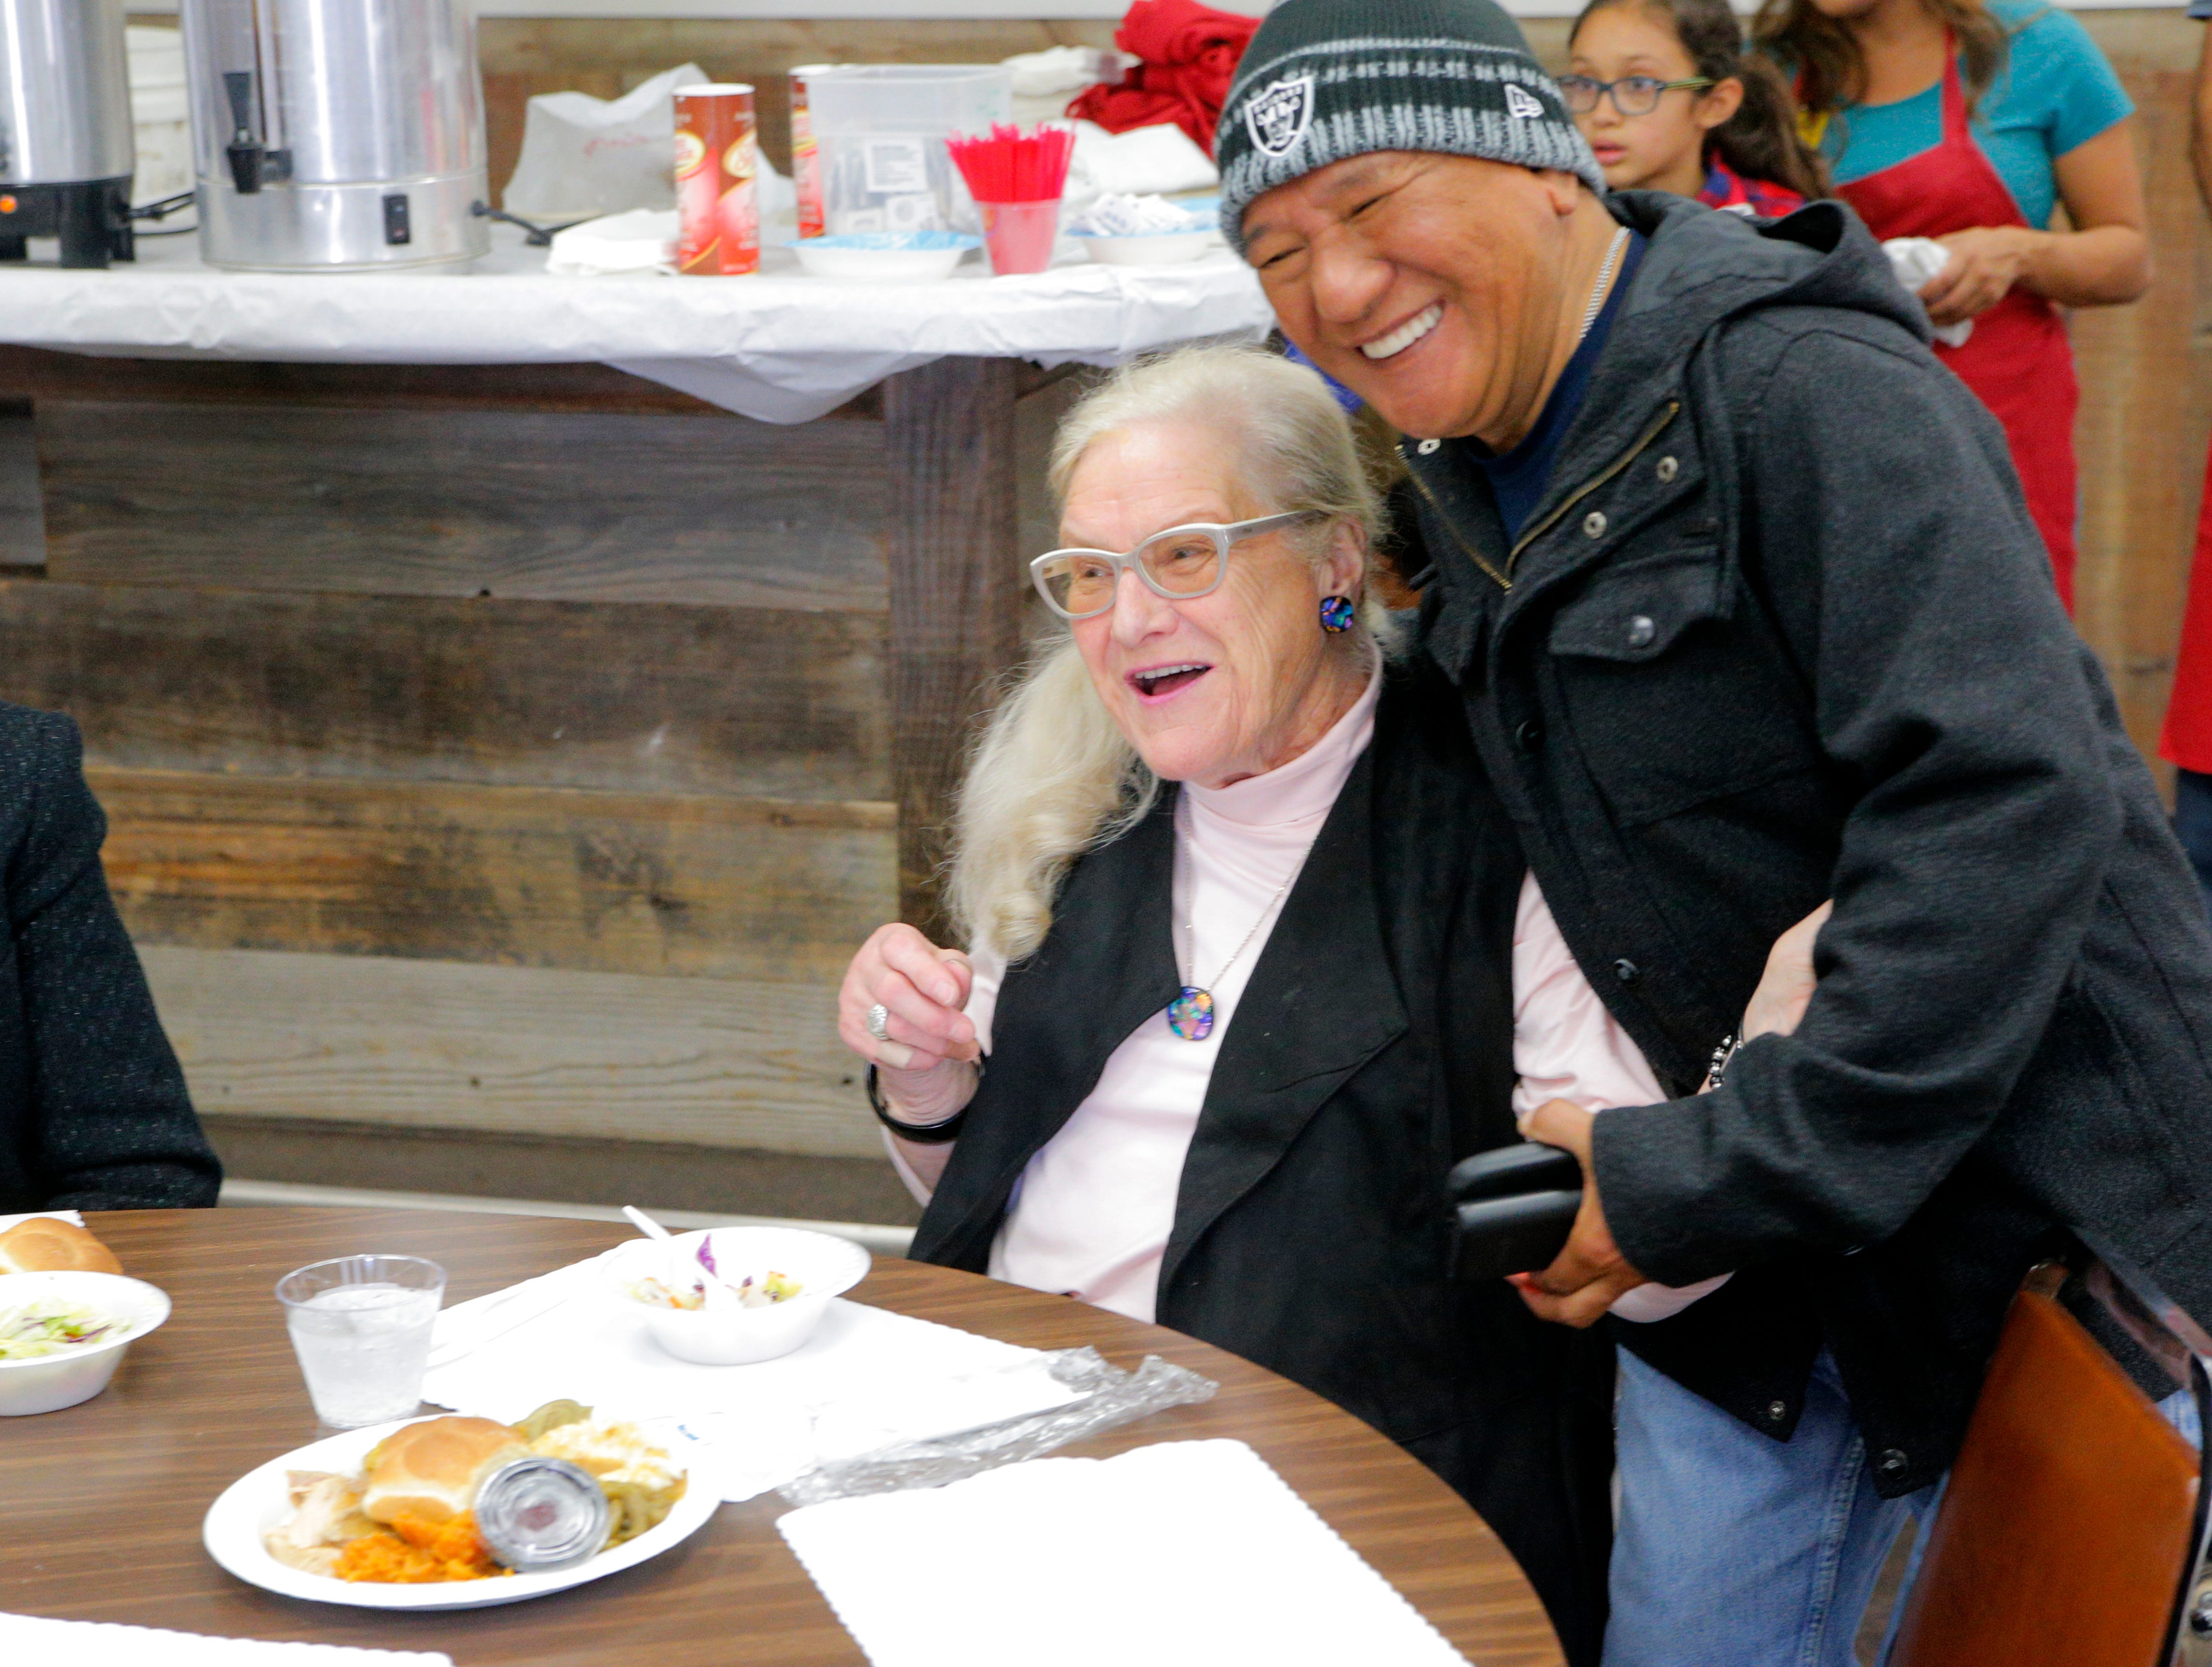 PHOTOS: Love served up with a side of turkey and pie in Salinas